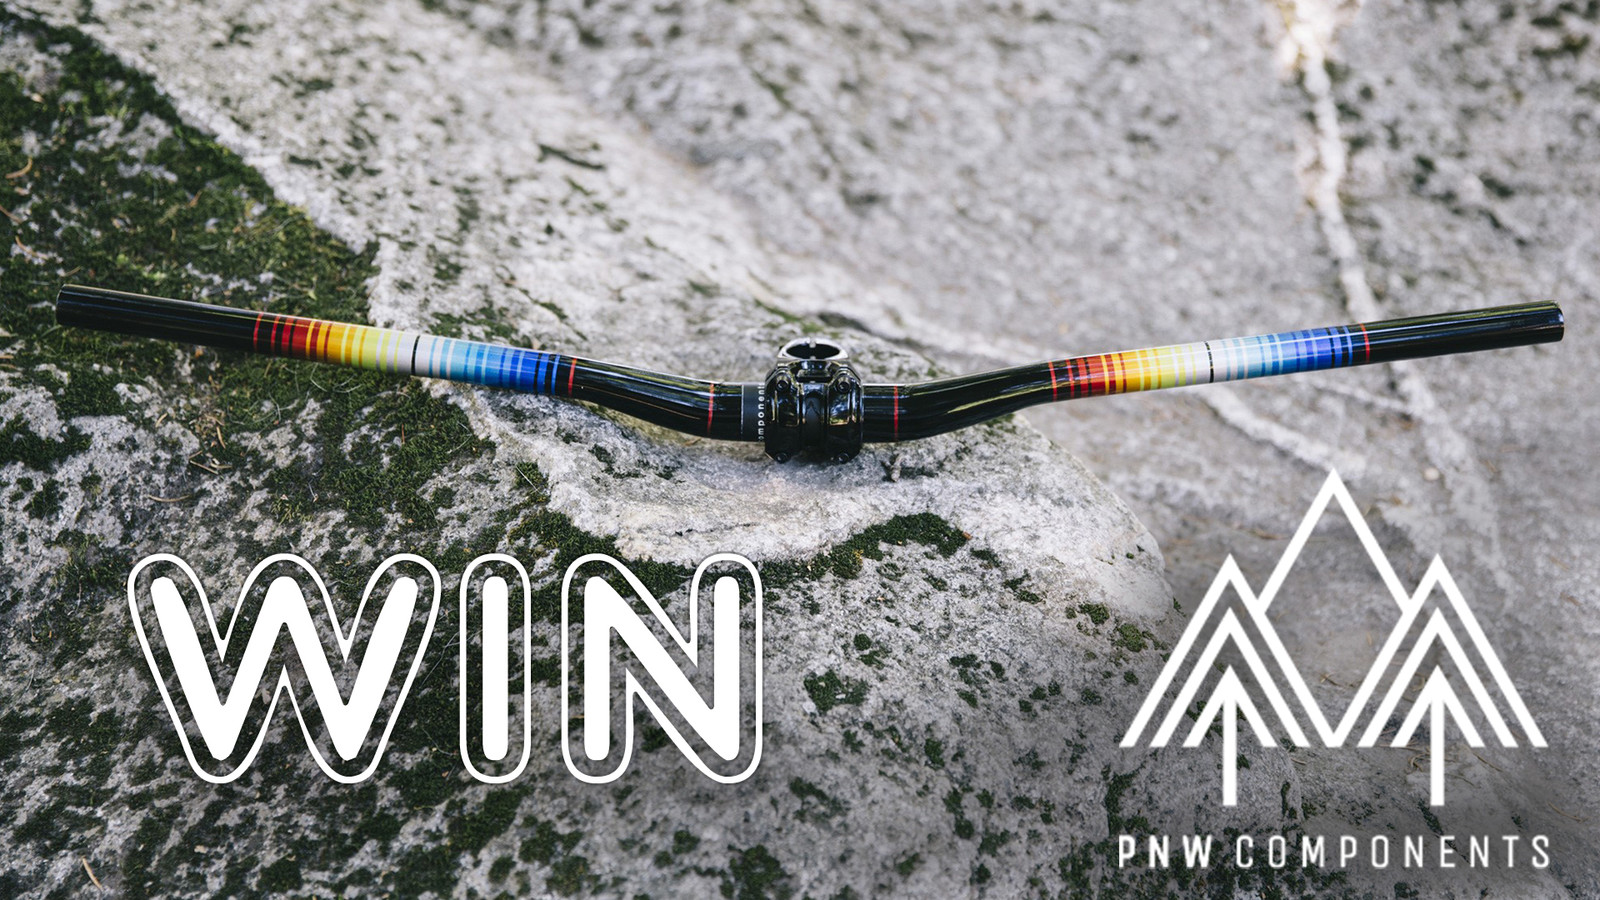 Tag a Friend and Score a Unique Cockpit from PNW Components